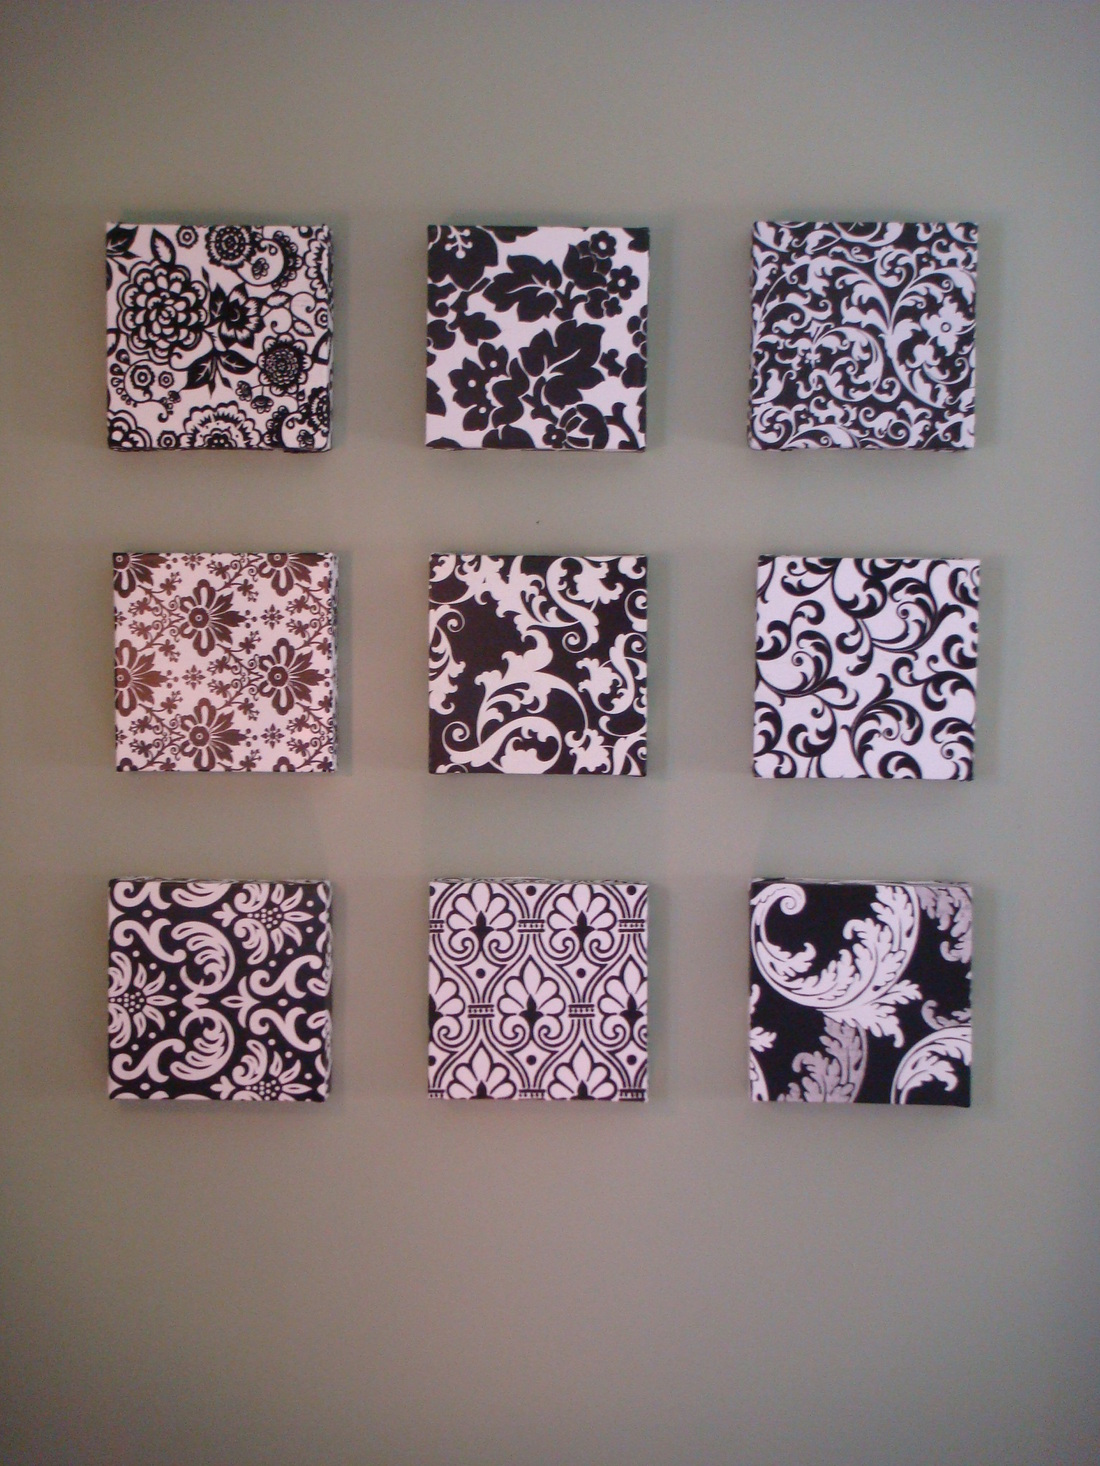 More Cheap And Easy Wall Art SEW Classy Designs And Alterations